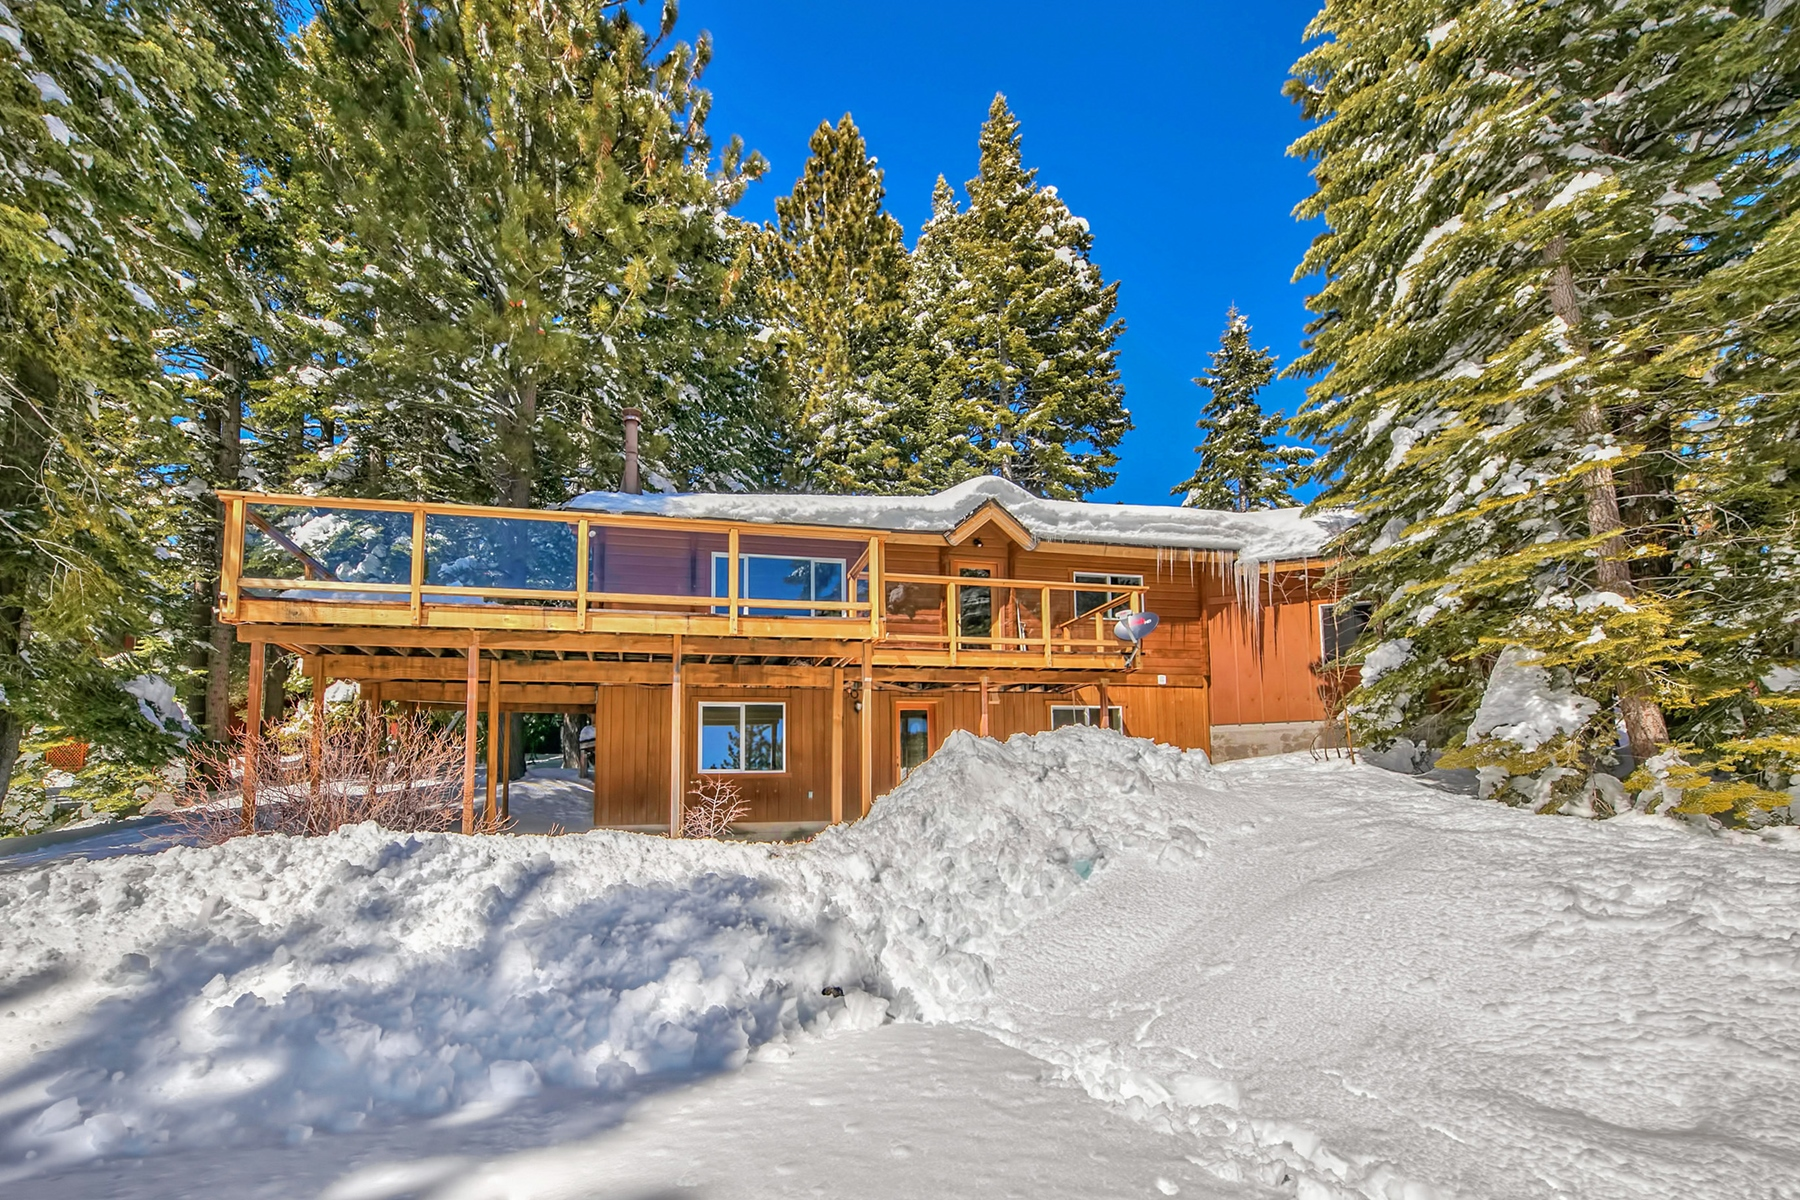 Single Family Home for Active at 528 Joseph Court, Tahoe City, CA 528 Joseph Court Tahoe City, California 96145 United States